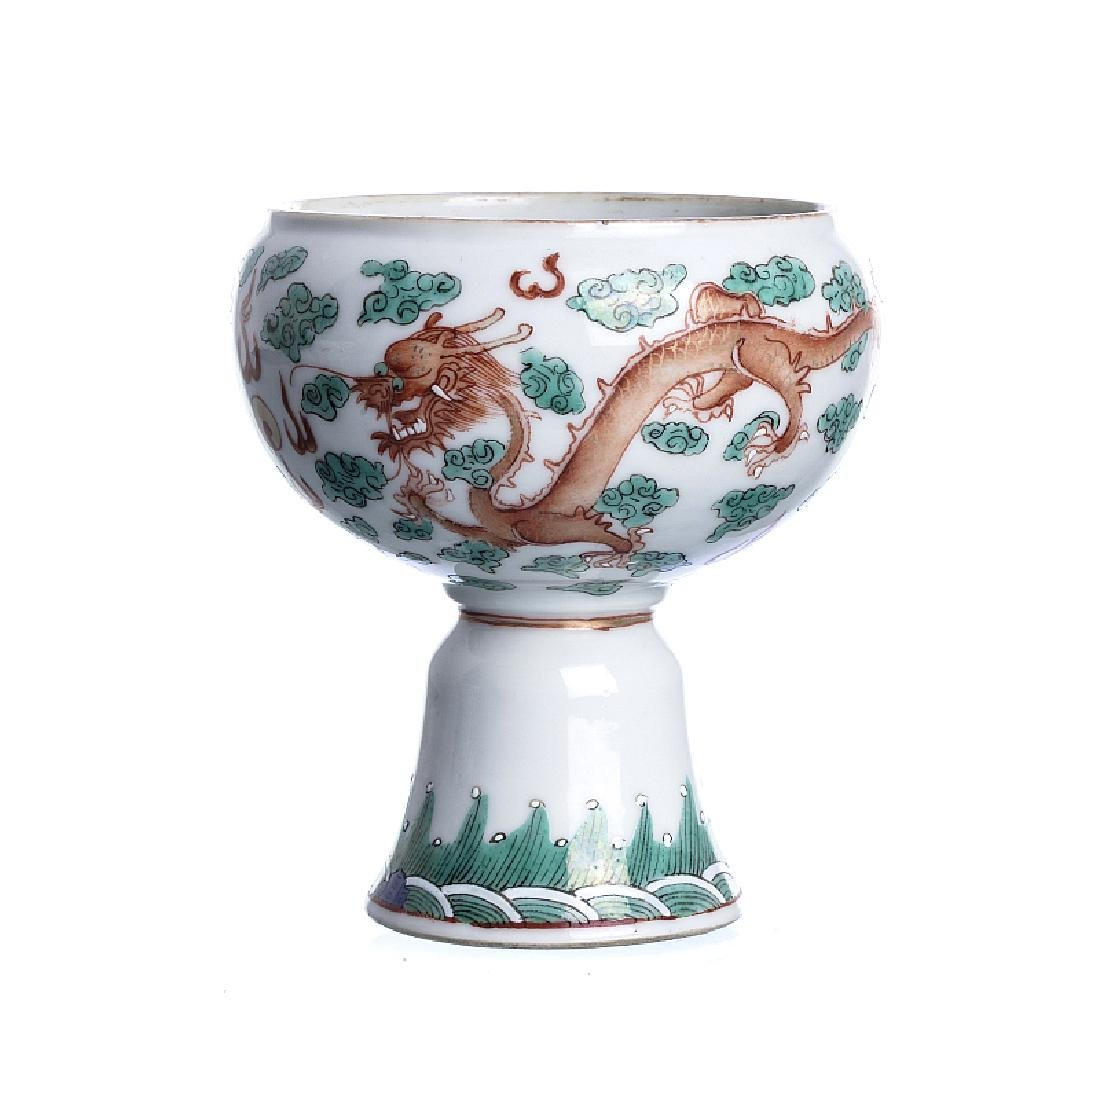 'Dragon' cup in Chinese porcelain